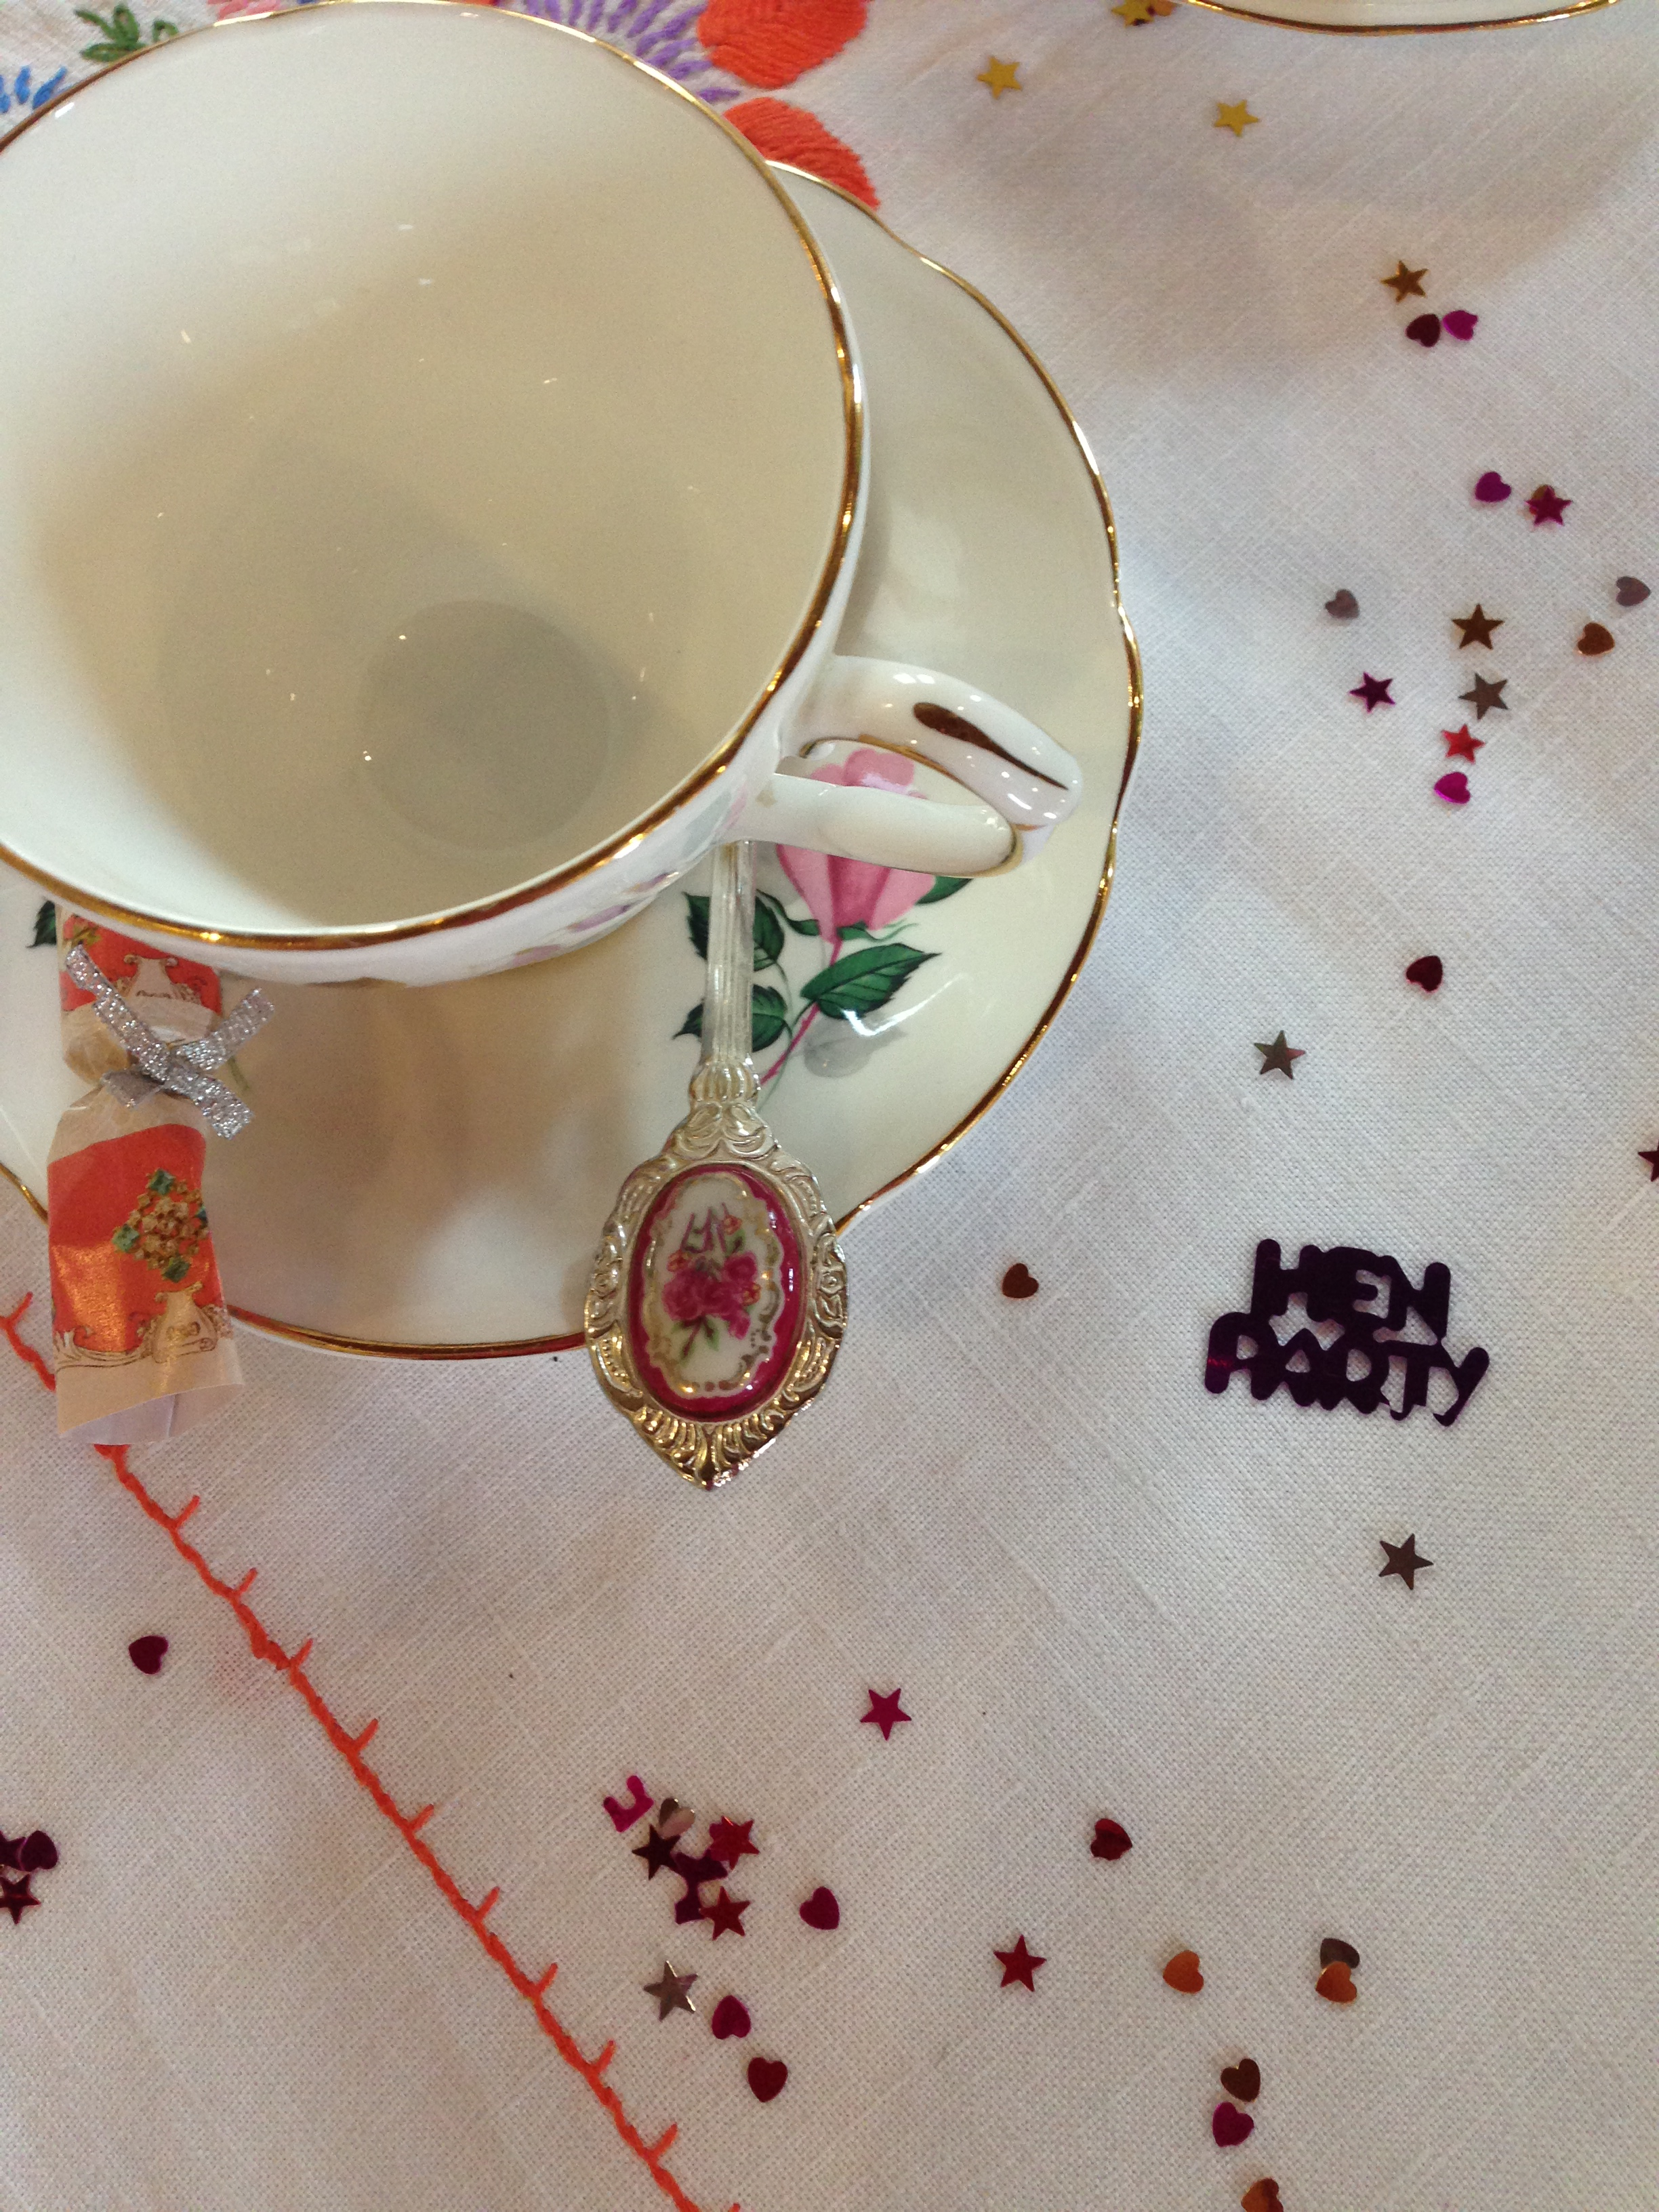 Hen party cup and saucer.jpg